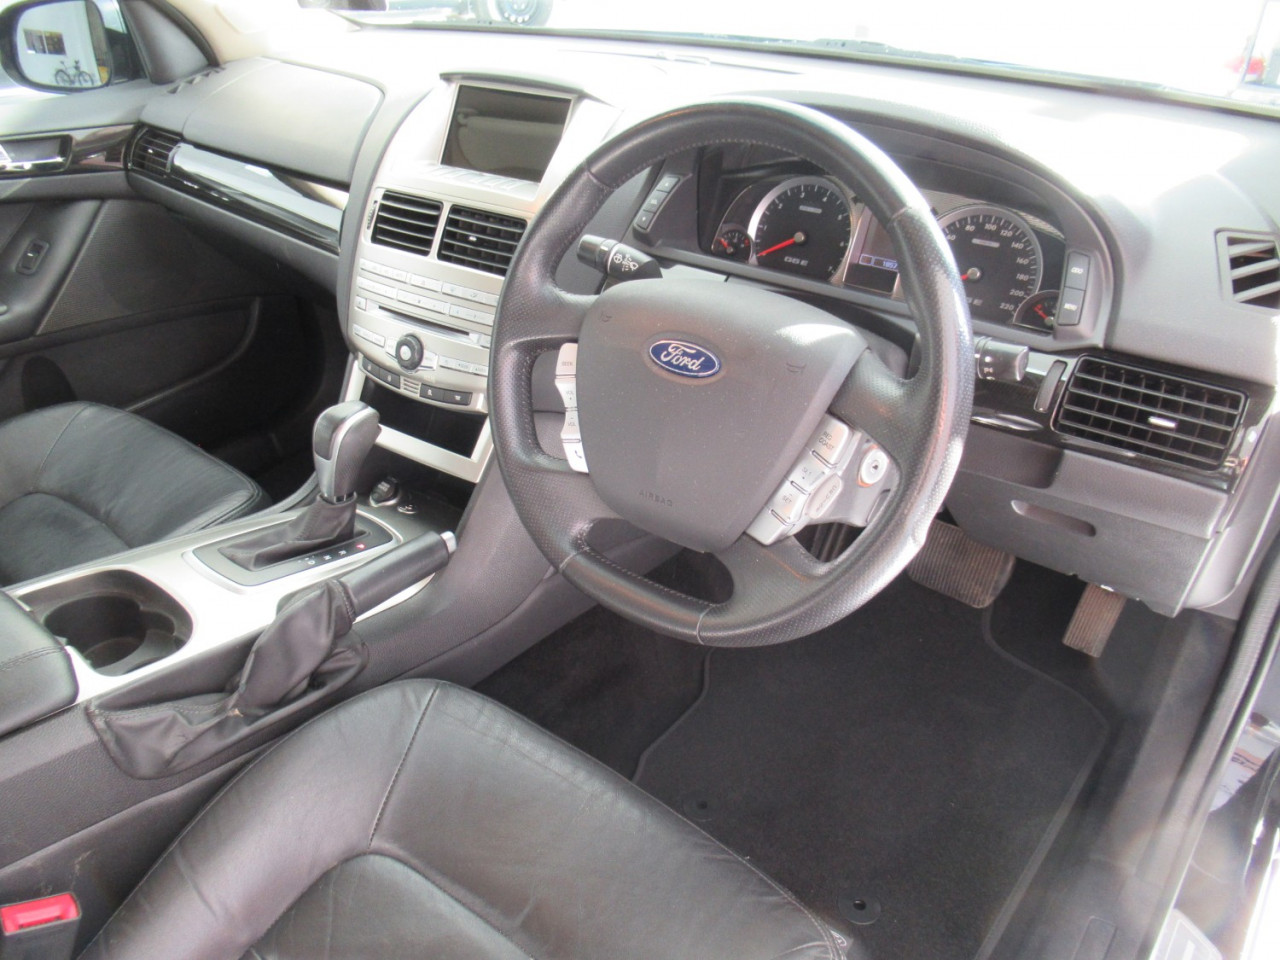 2008 Ford G6 Series FG G6E Sedan Image 12